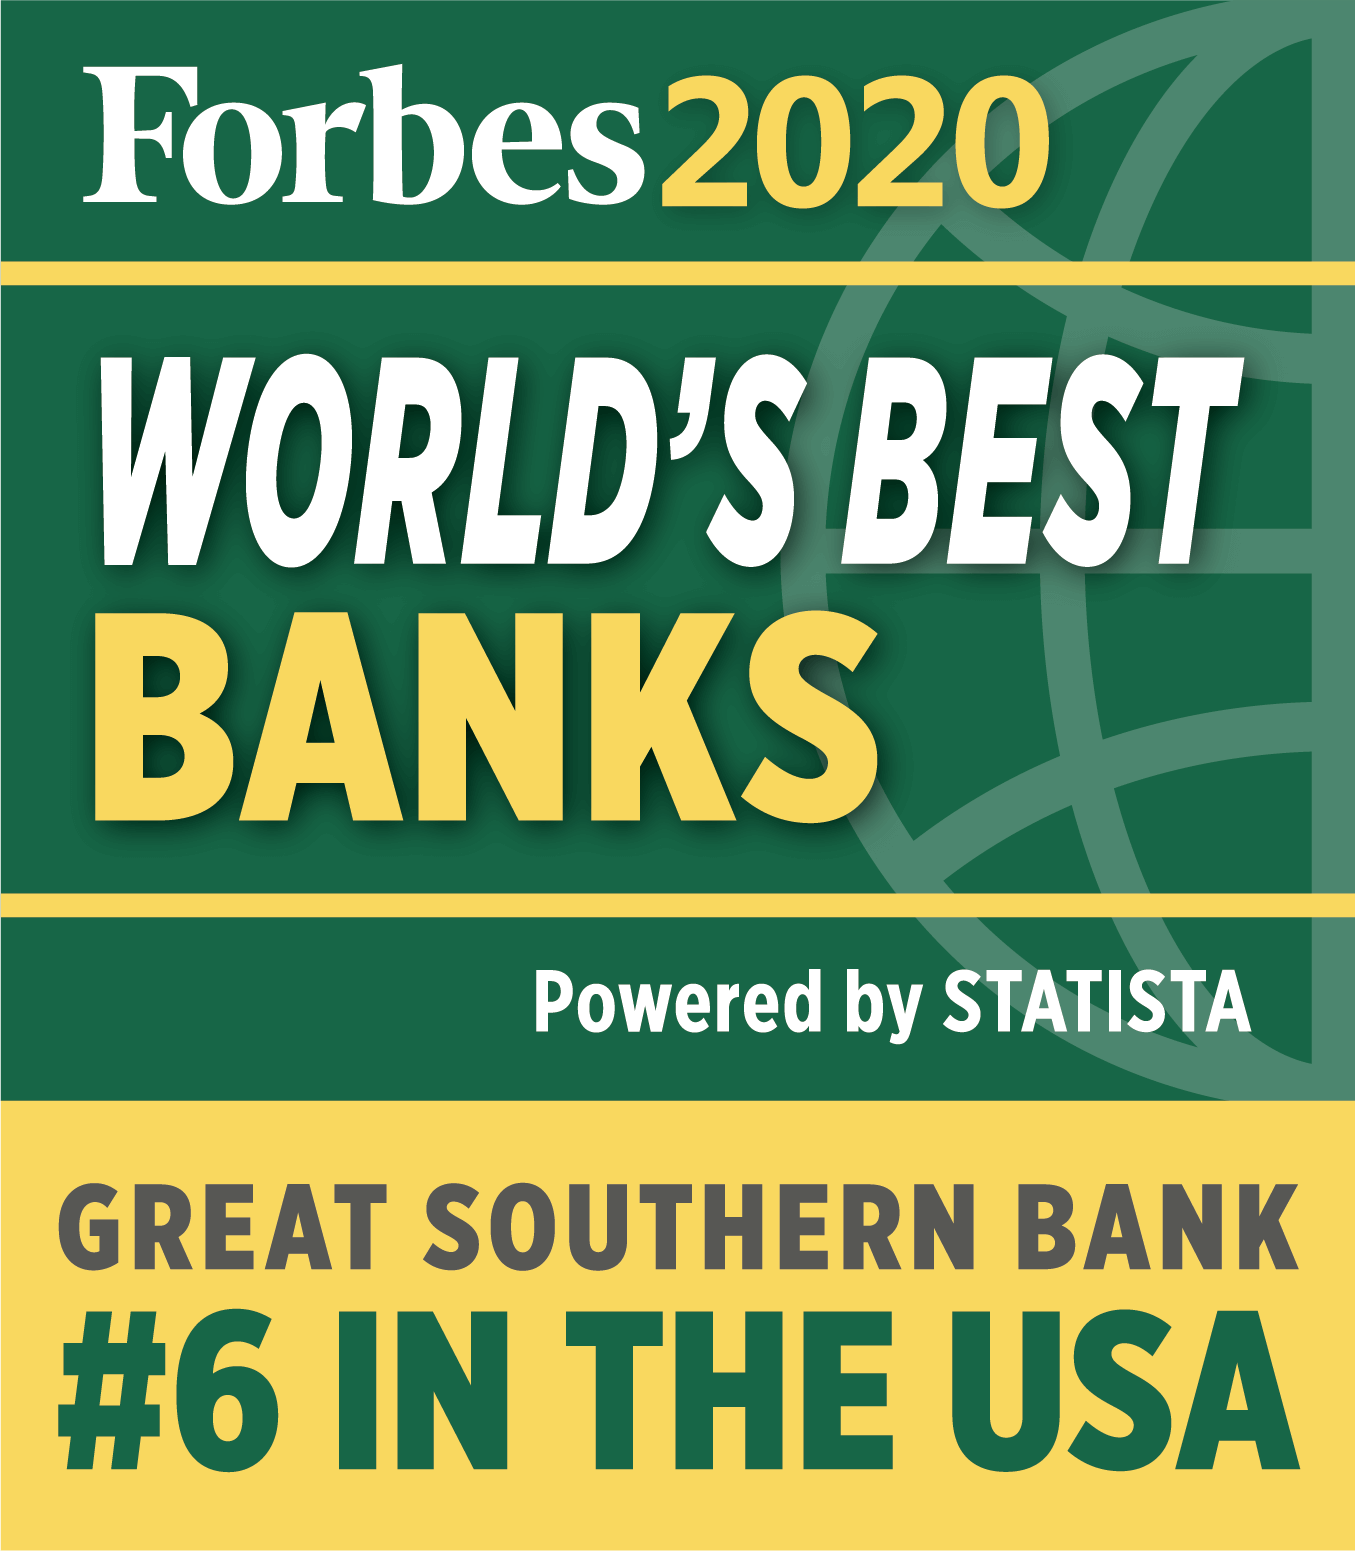 Forbes2020 World's Best Banks - #6 in the USA